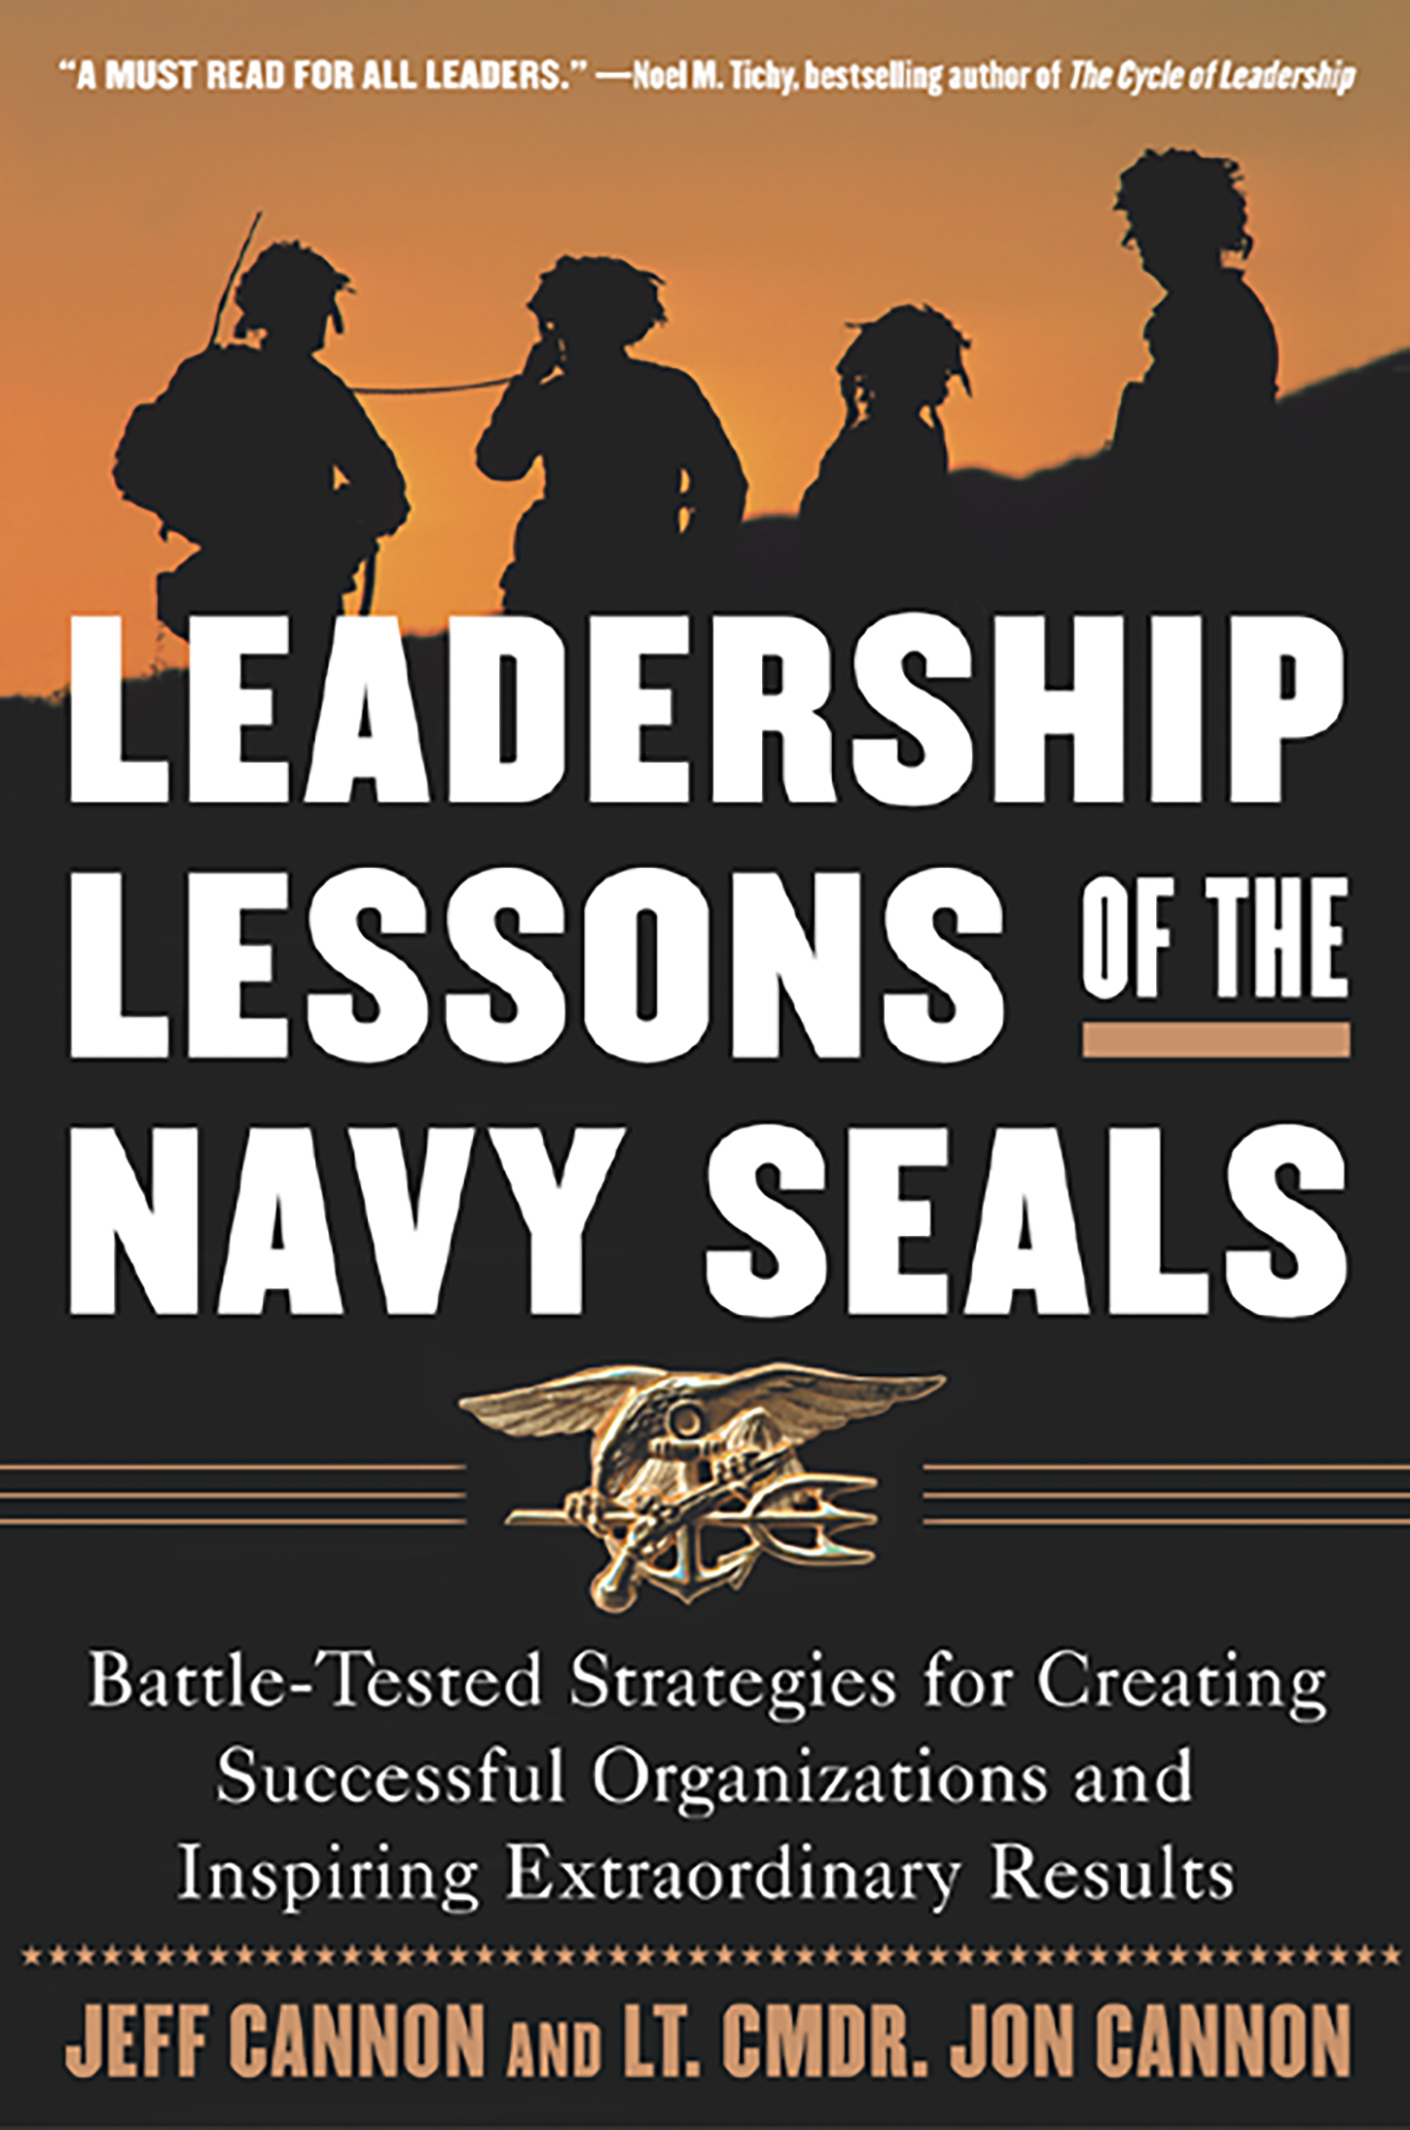 Download Ebook The Leadership Lessons of the U.S. Navy SEALS by Jeff Cannon Pdf